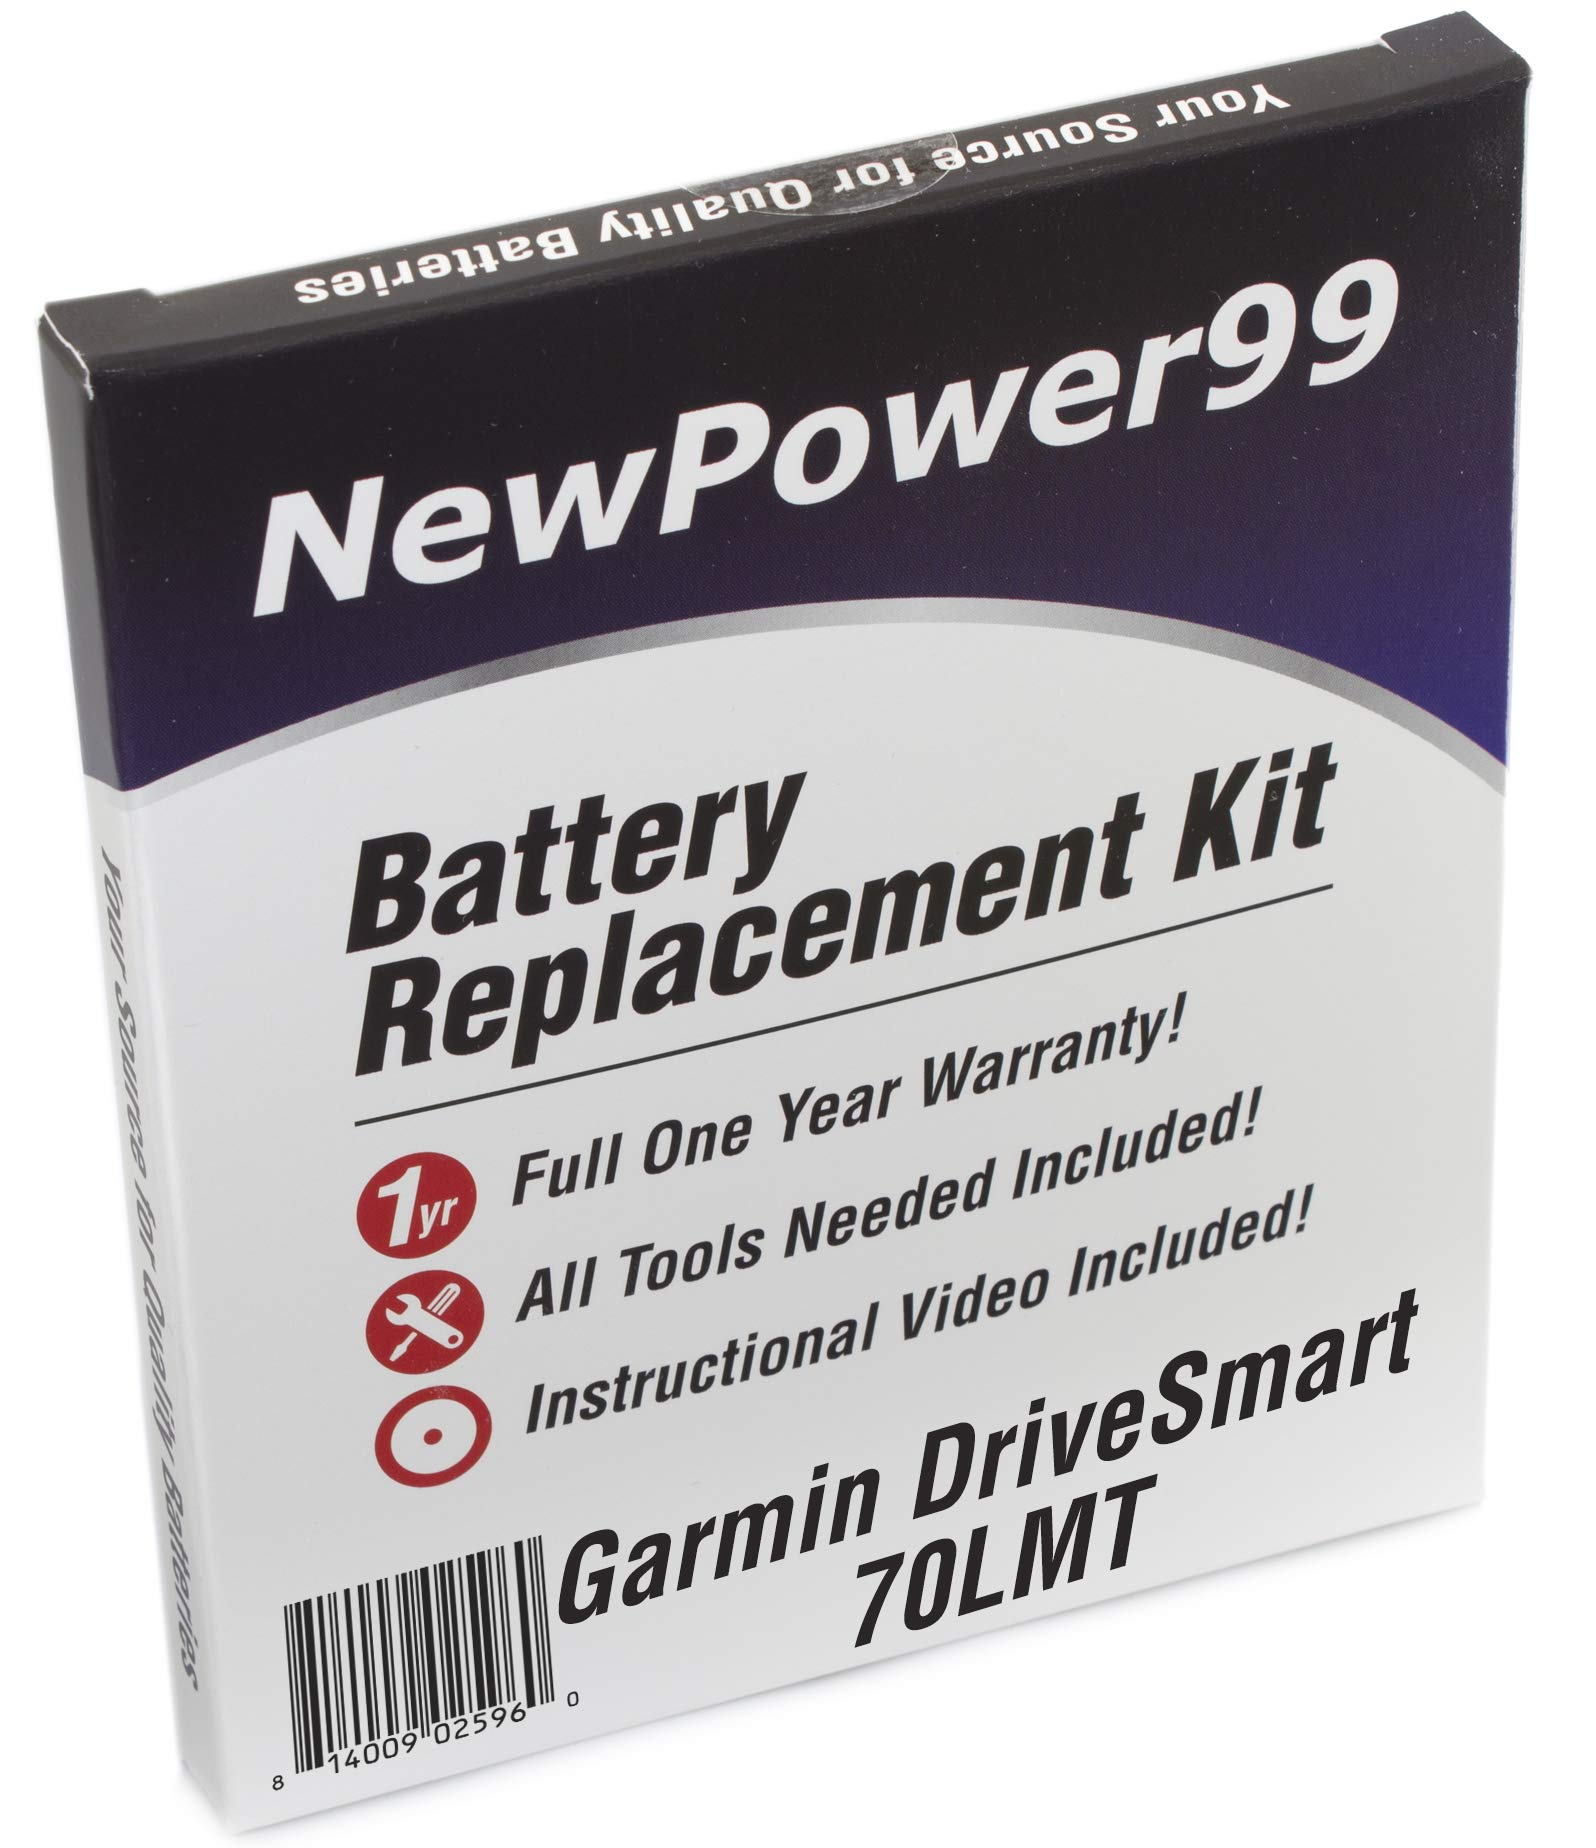 NewPower99 Battery Replacement Kit with Battery, Video Instructions and Tools for Garmin DriveSmart 70LMT by NewPower99